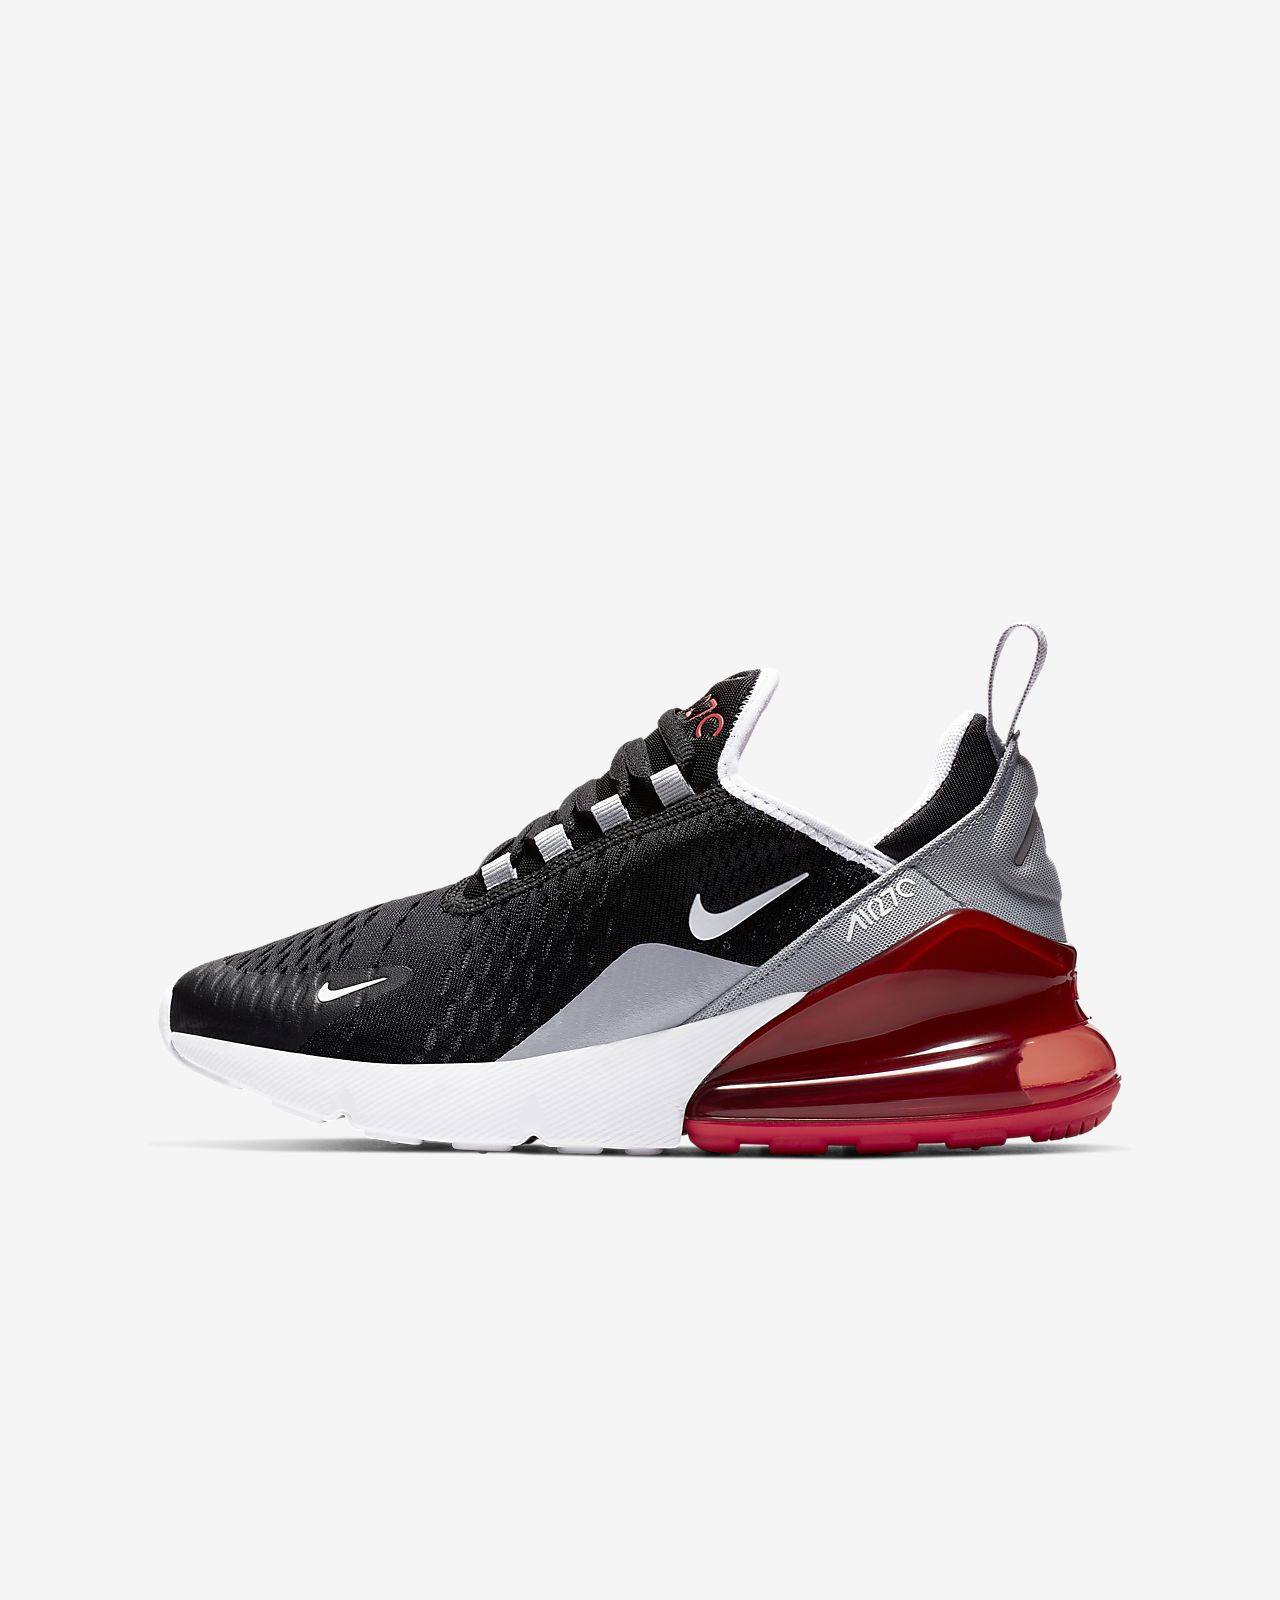 factory authentic 46cd2 2f813 ... Nike Air Max 270 Zapatillas - Niñoa